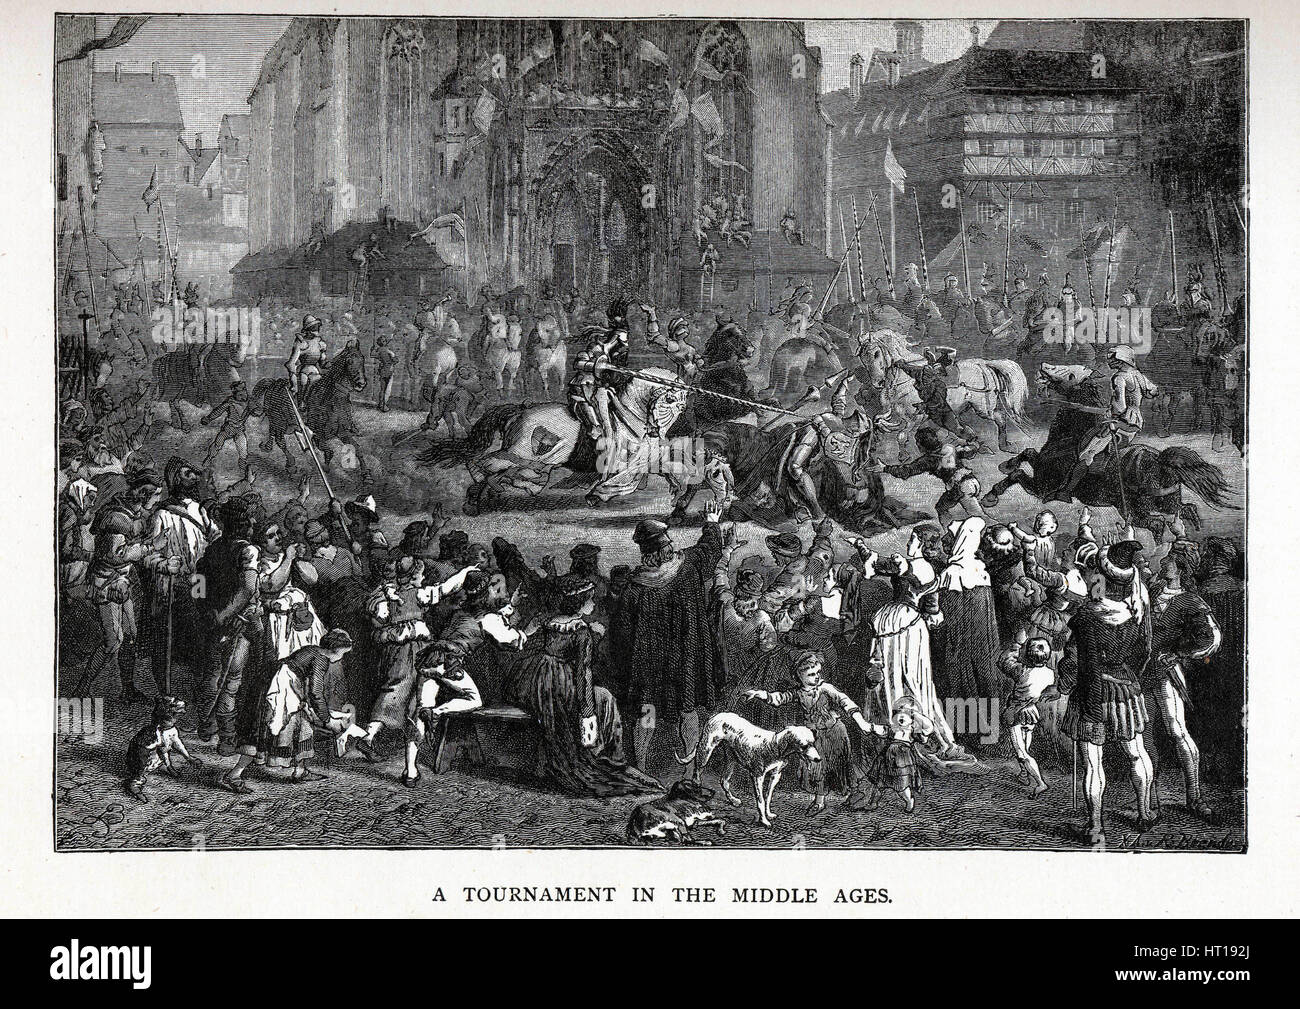 A Tournament in the Middle Ages, 1882. Artist: Brend'amour, Richard (1831-1915) - Stock Image